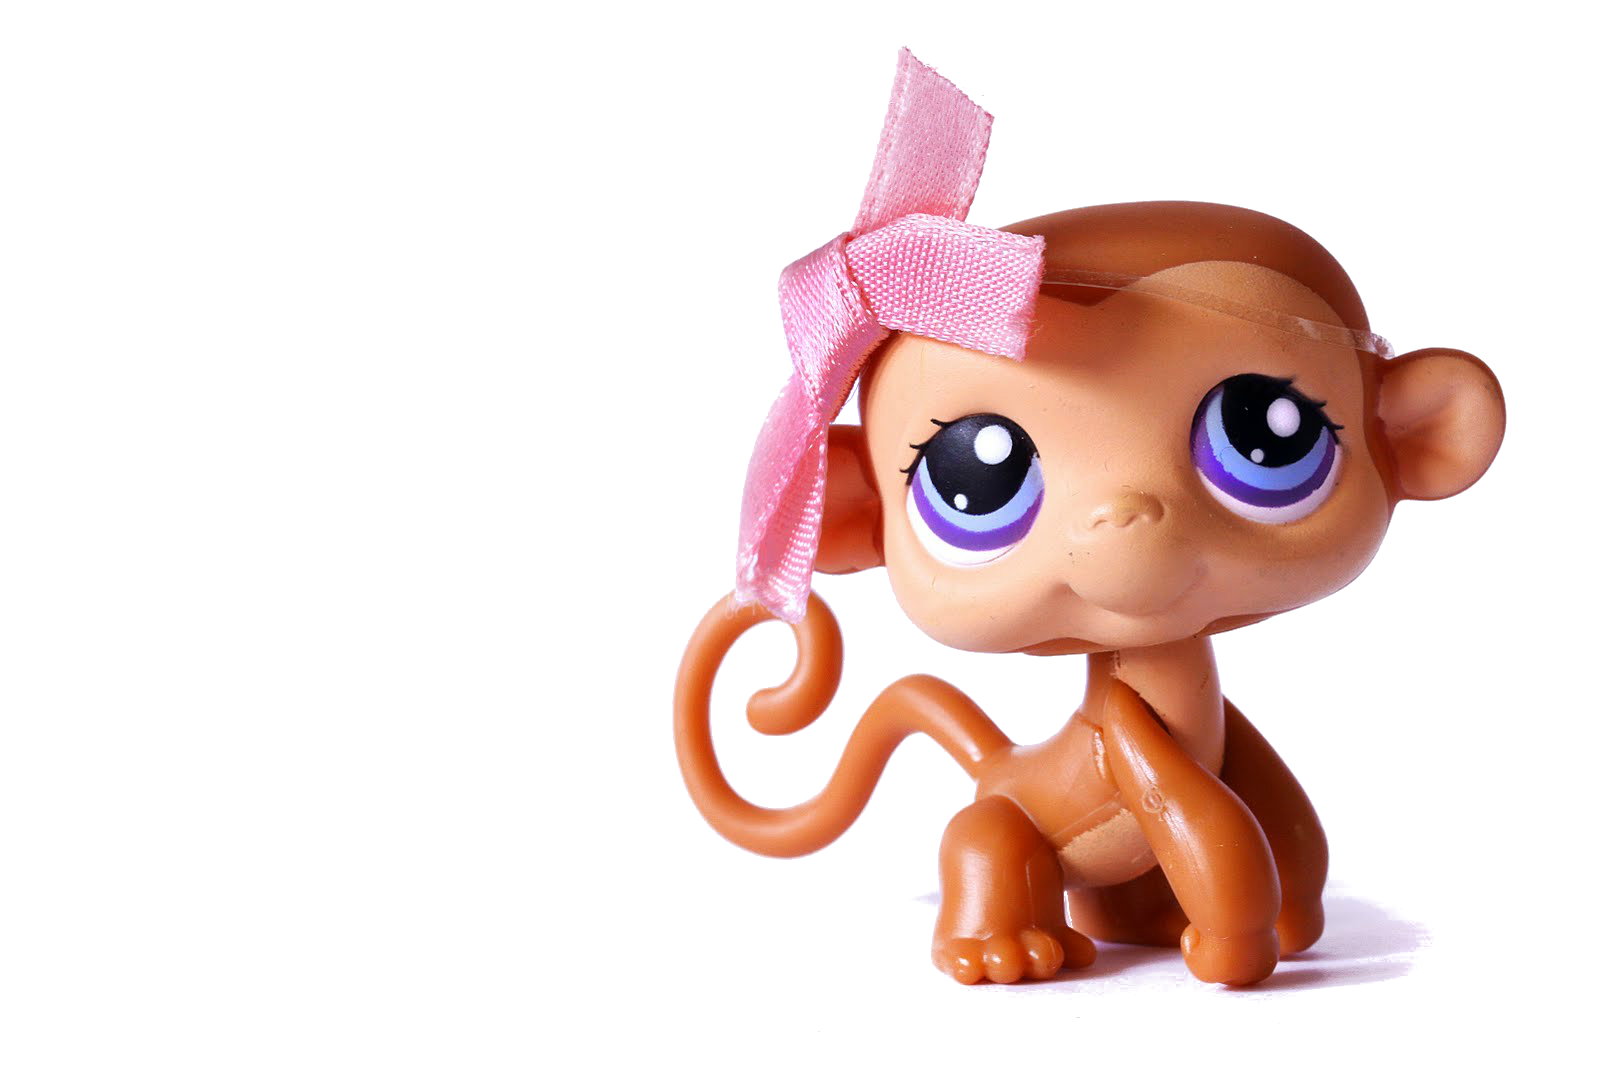 Image Gallery: Lps Transparent